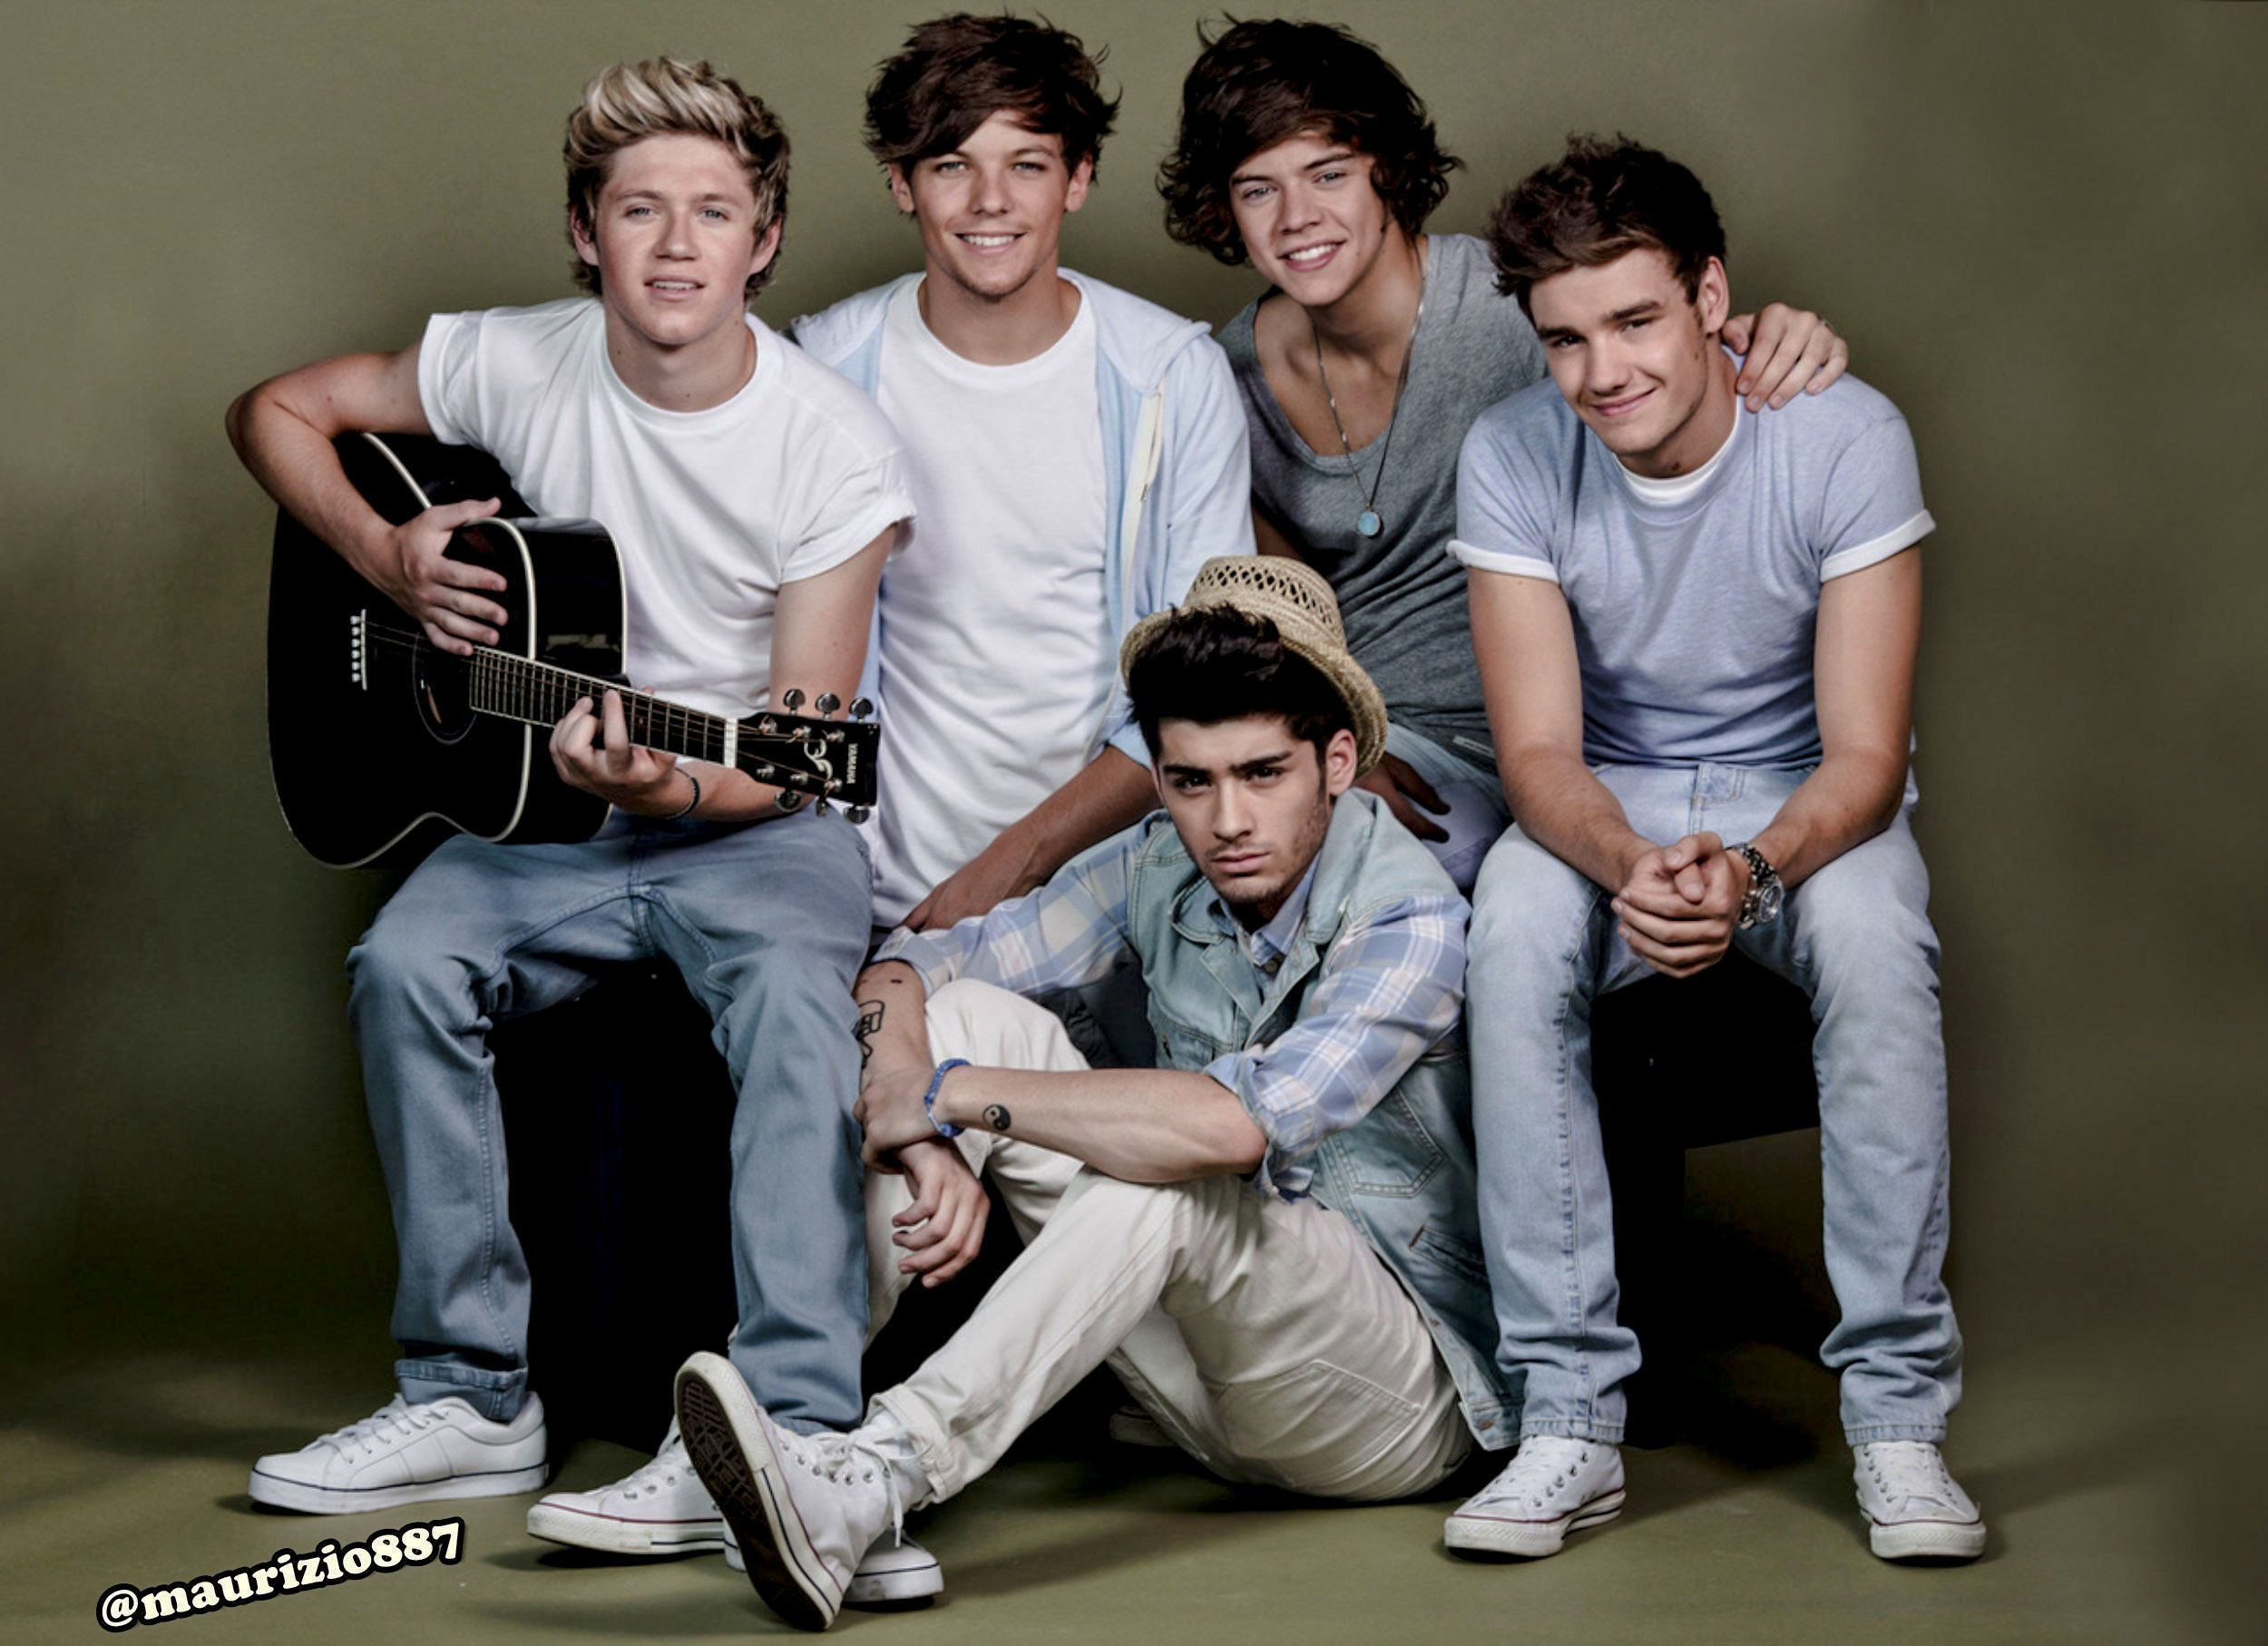 One Direction Wallpaper For Laptop 64 Images Onedirection2014